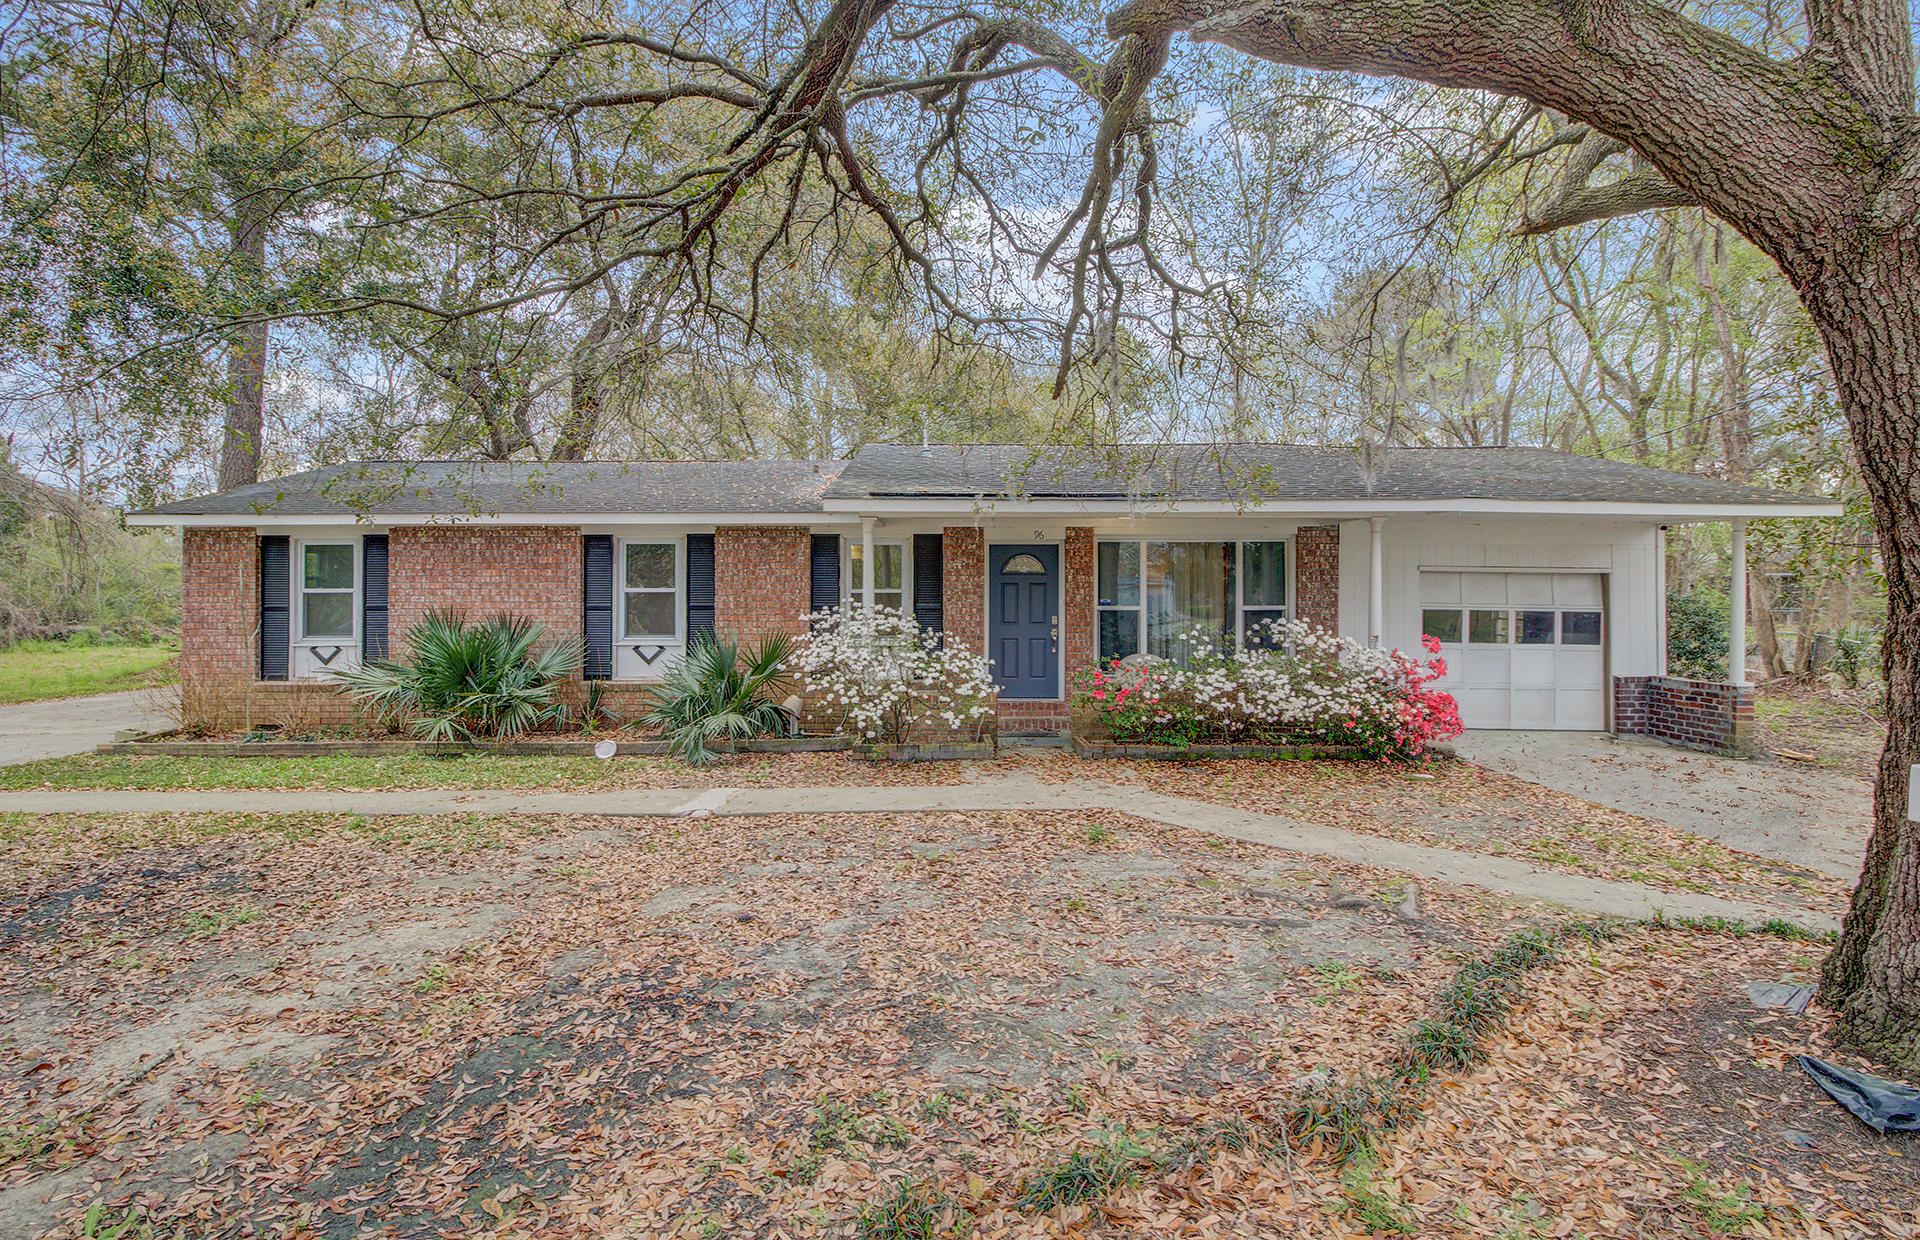 Tranquil Acres Homes For Sale - 96 Tranquil, Ladson, SC - 28